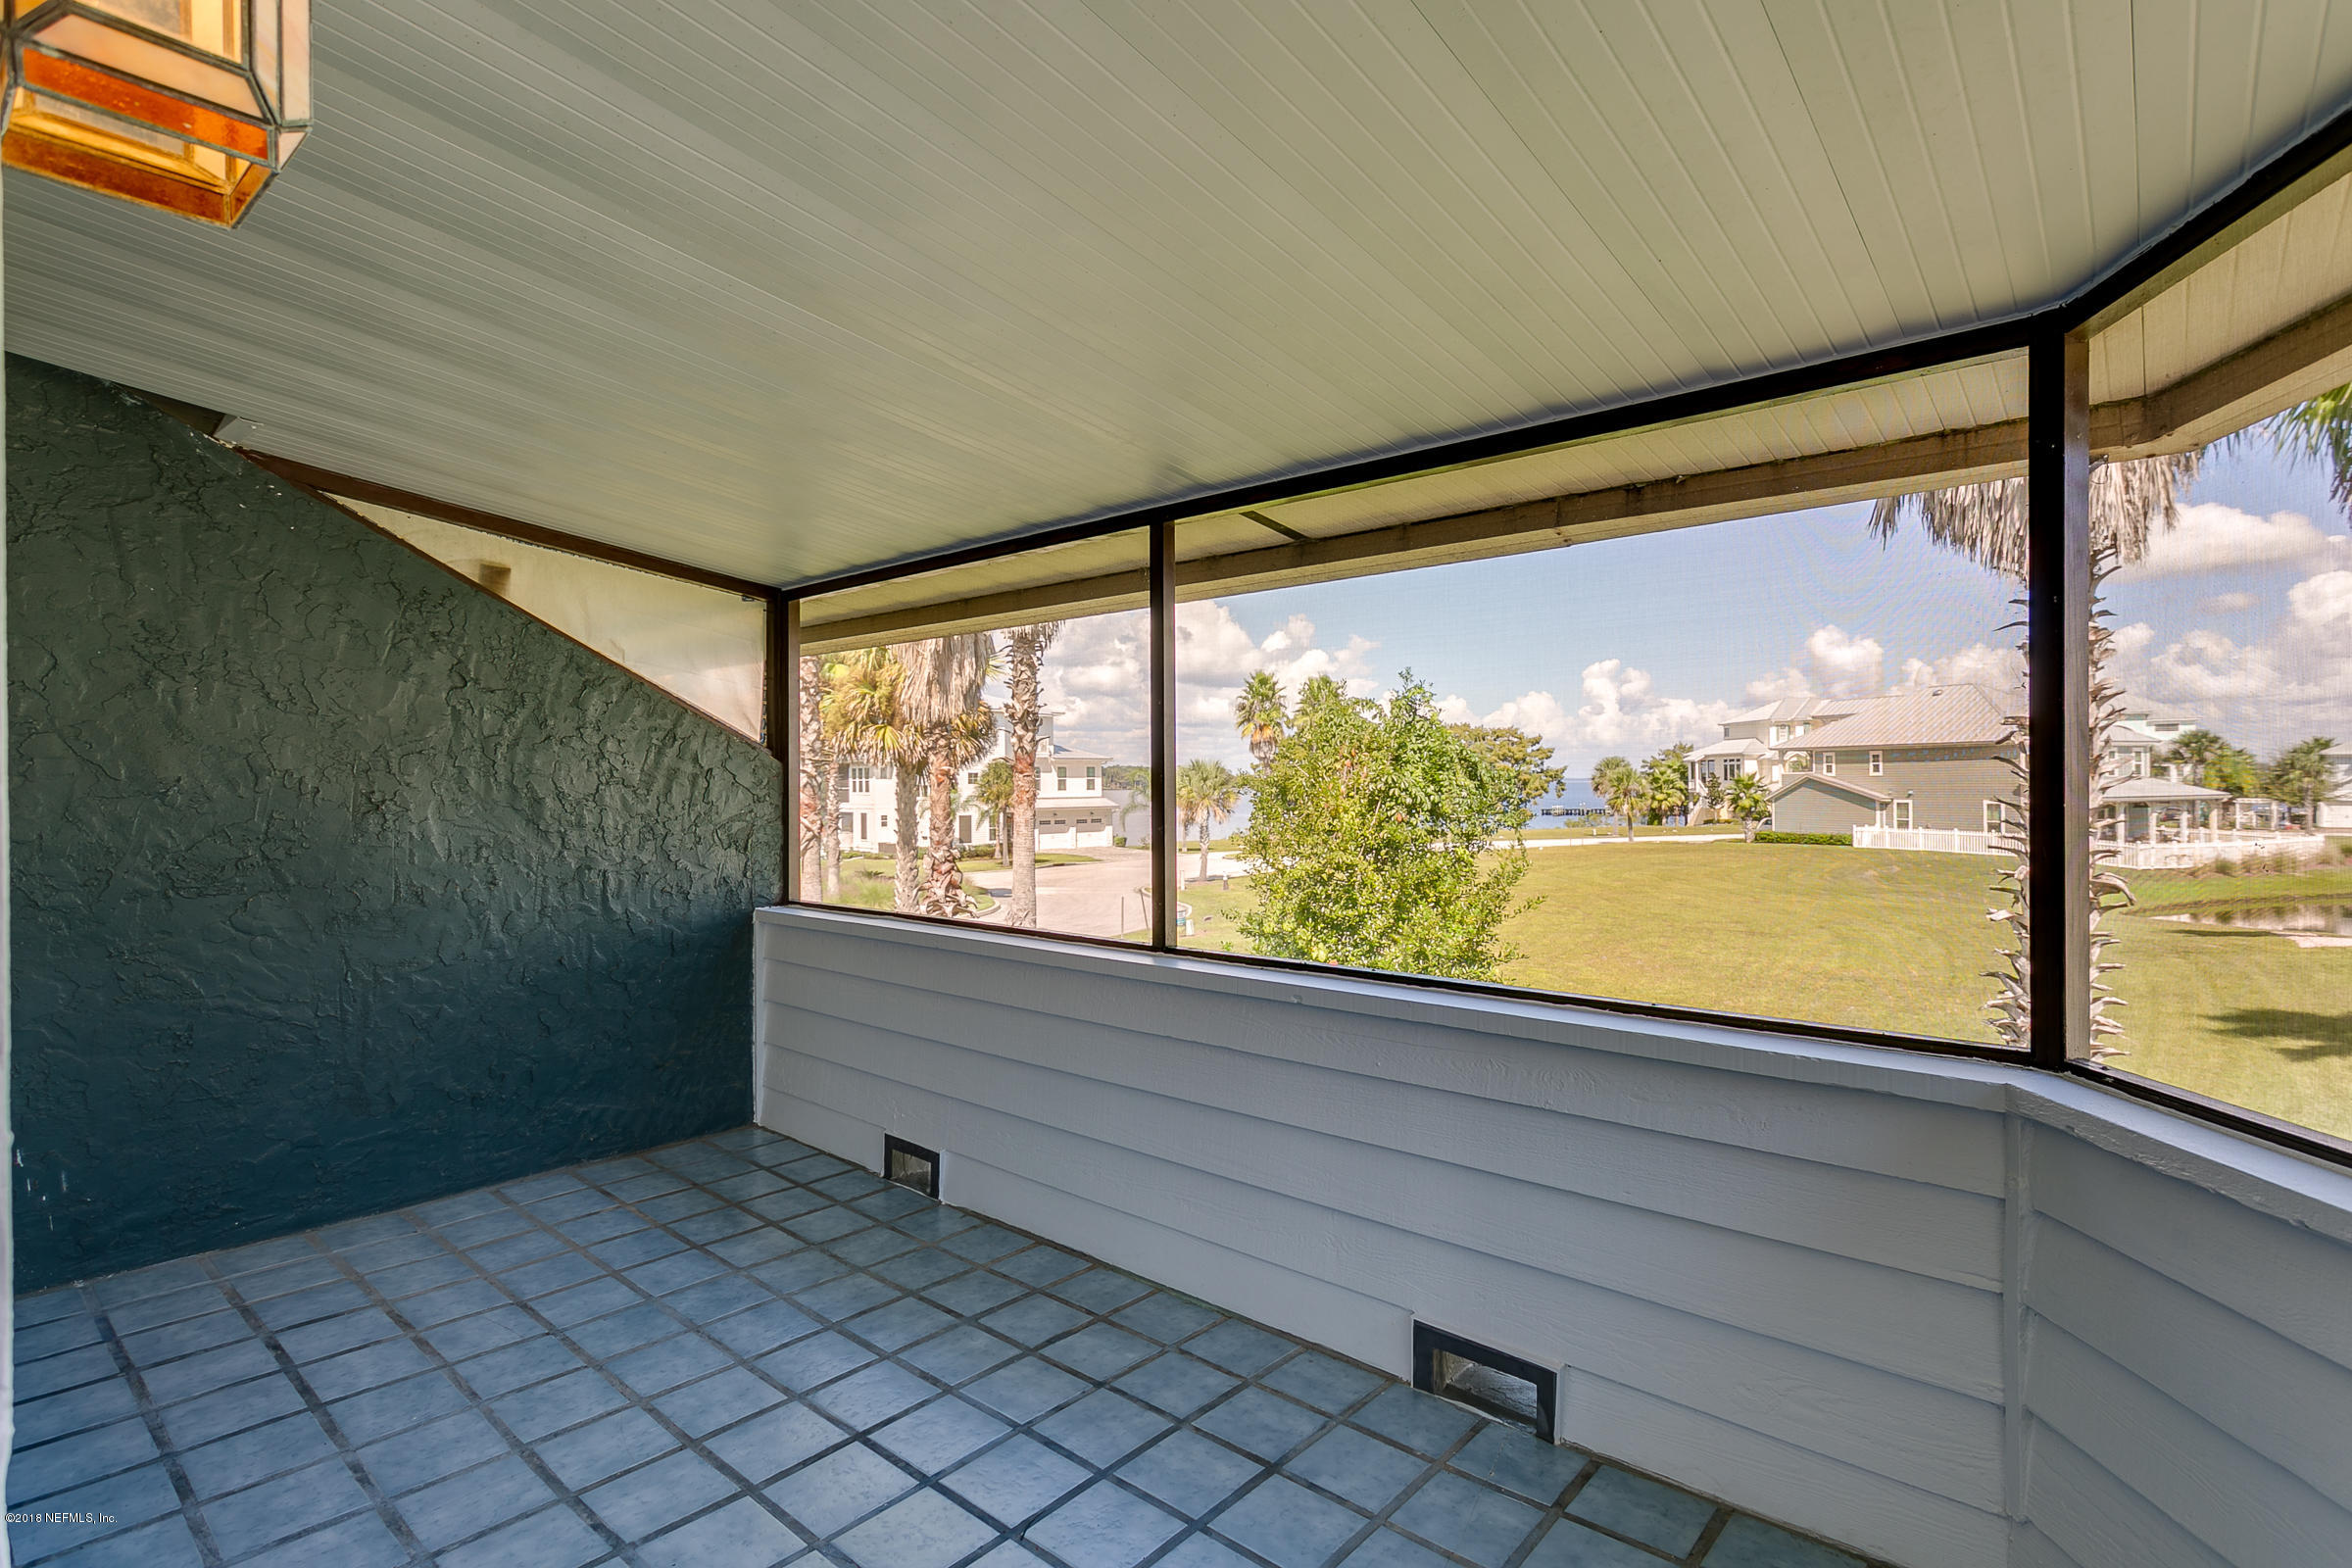 106 GOVERNOR, GREEN COVE SPRINGS, FLORIDA 32043, 2 Bedrooms Bedrooms, ,2 BathroomsBathrooms,Residential - condos/townhomes,For sale,GOVERNOR,962855